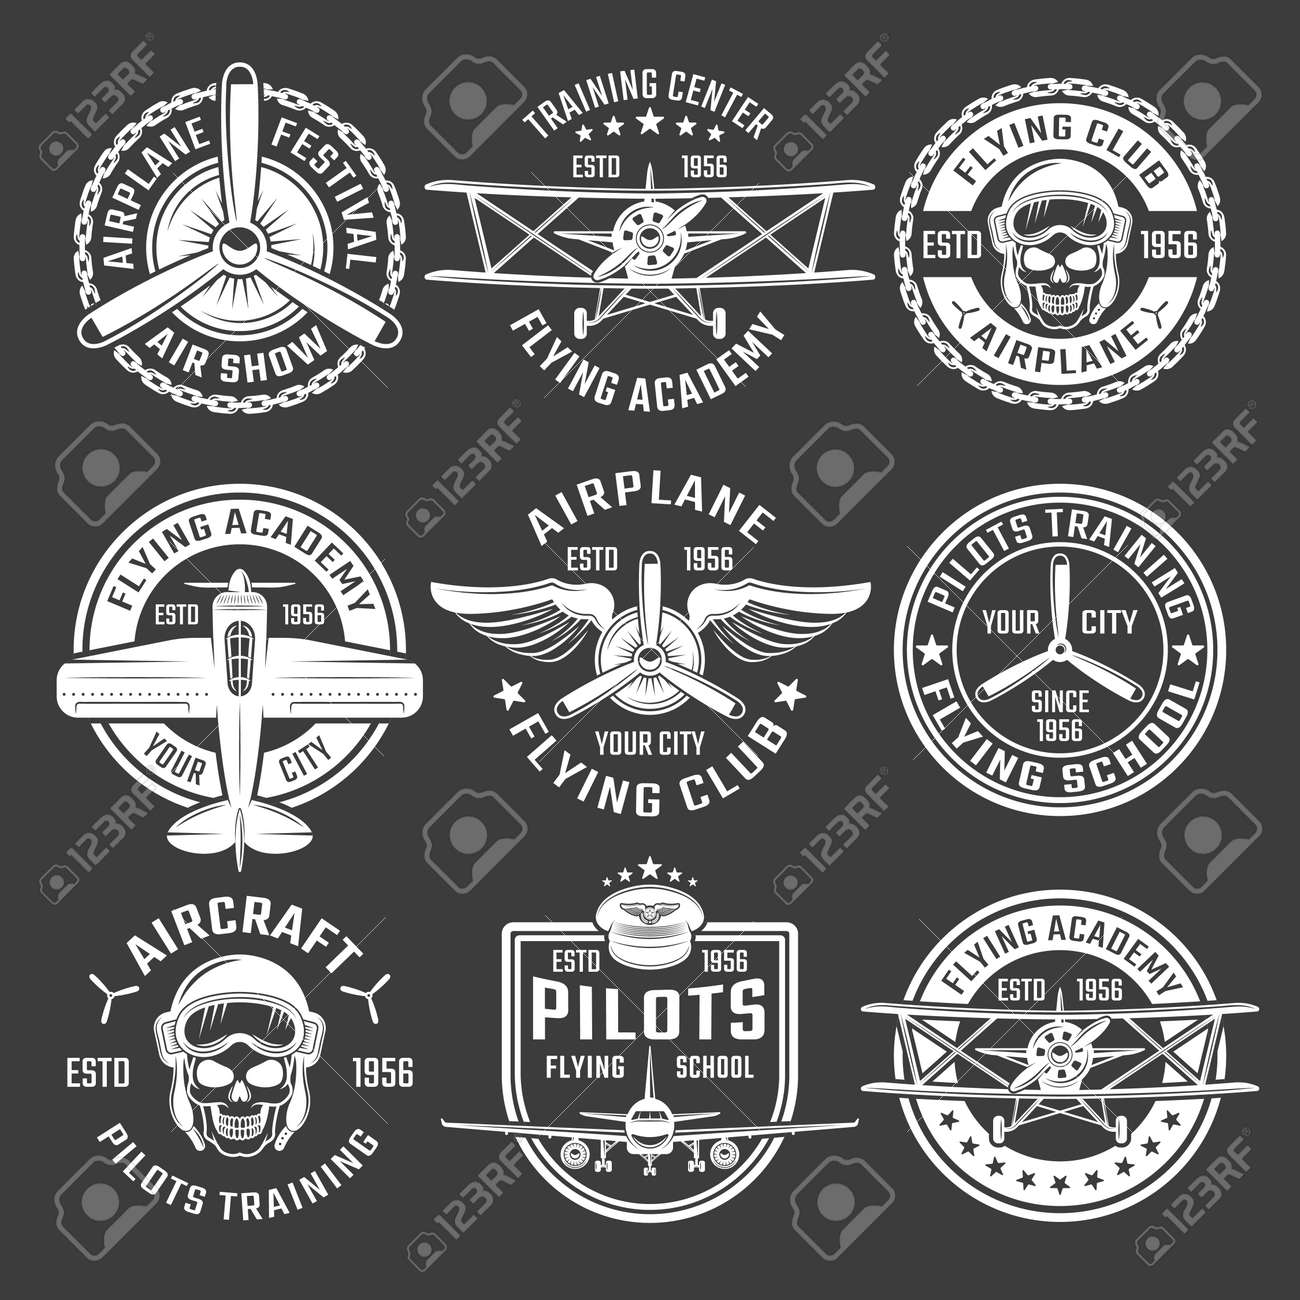 White color airplane emblem set with description of air show flying school pilots training vector illustration - 166687505